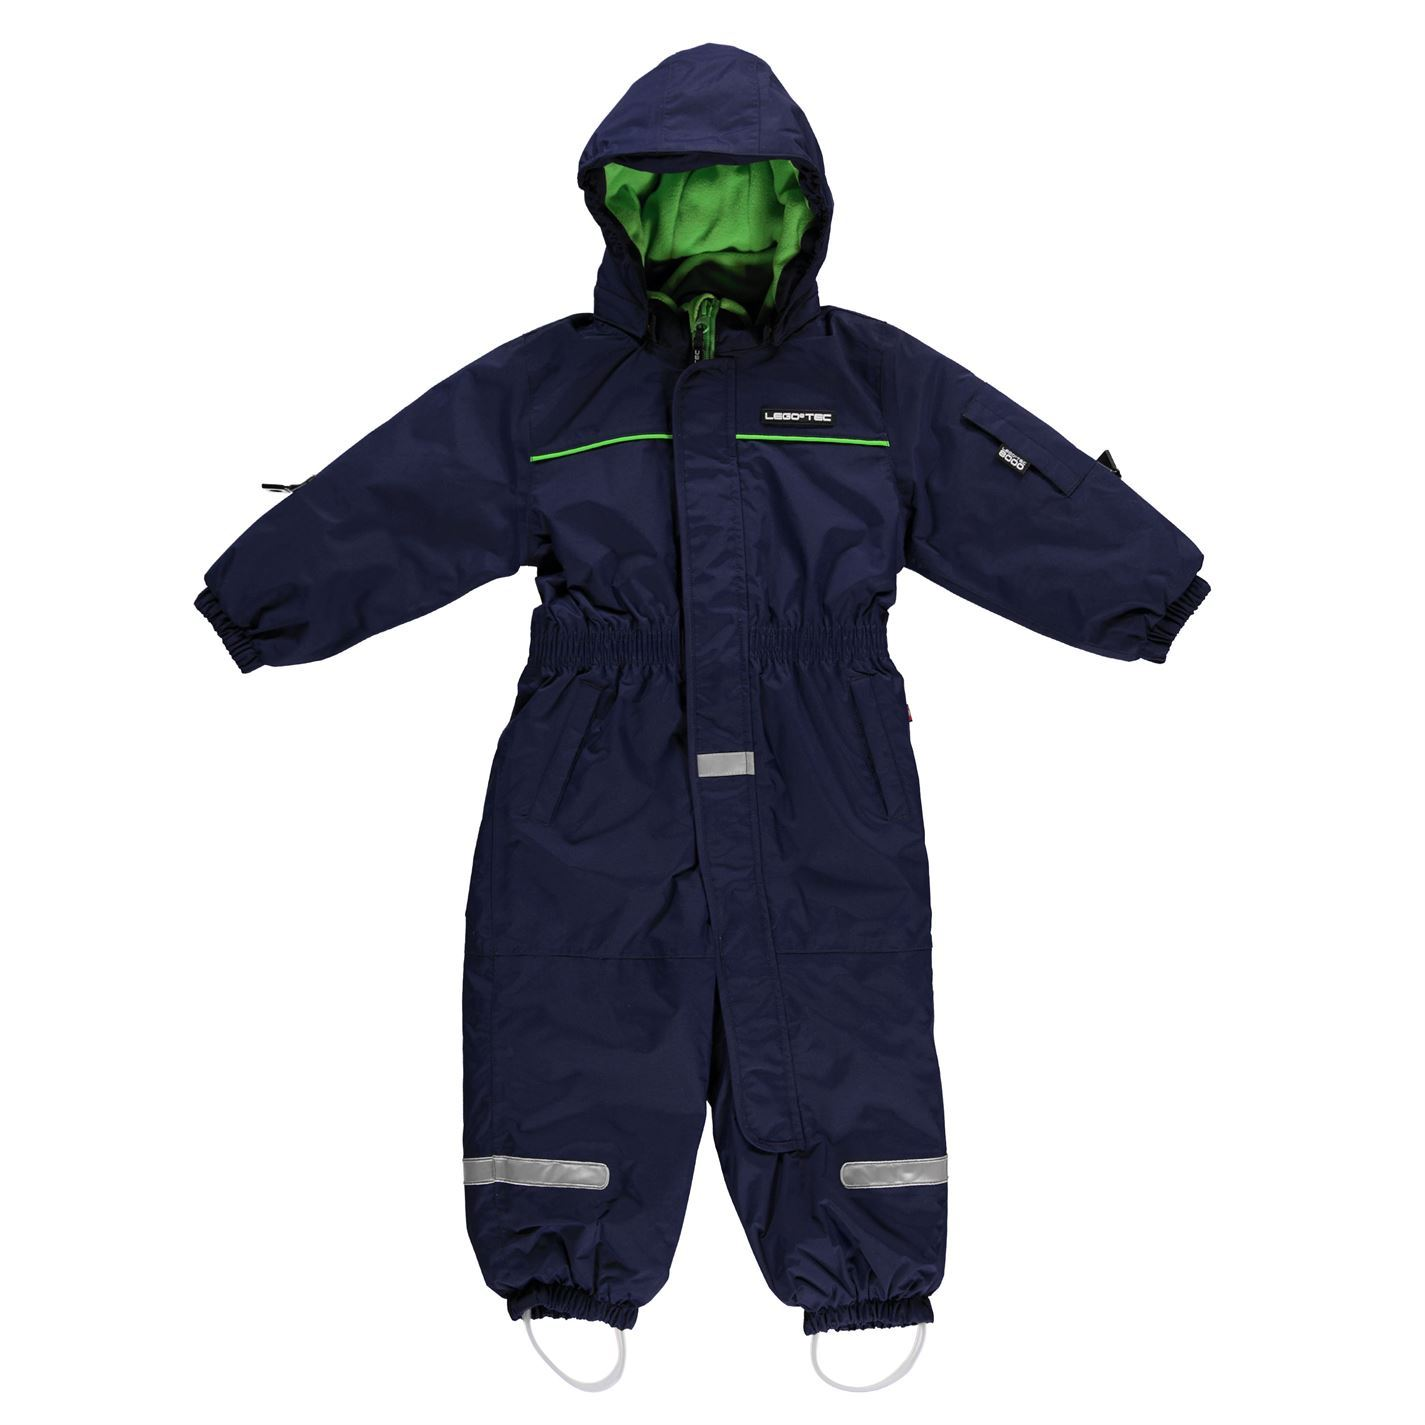 Browse our range of waterproof splash suits for toddlers and babies. Wrap your baby or toddler from top to toe in our waterproof all-in-ones. Our vibrant, colourful designs are perfect for torrential summer downpours, icy winter days or simply those occasions where they need that extra layer while they're rummaging in autumn leaves or looking for bugs in long wet grass.